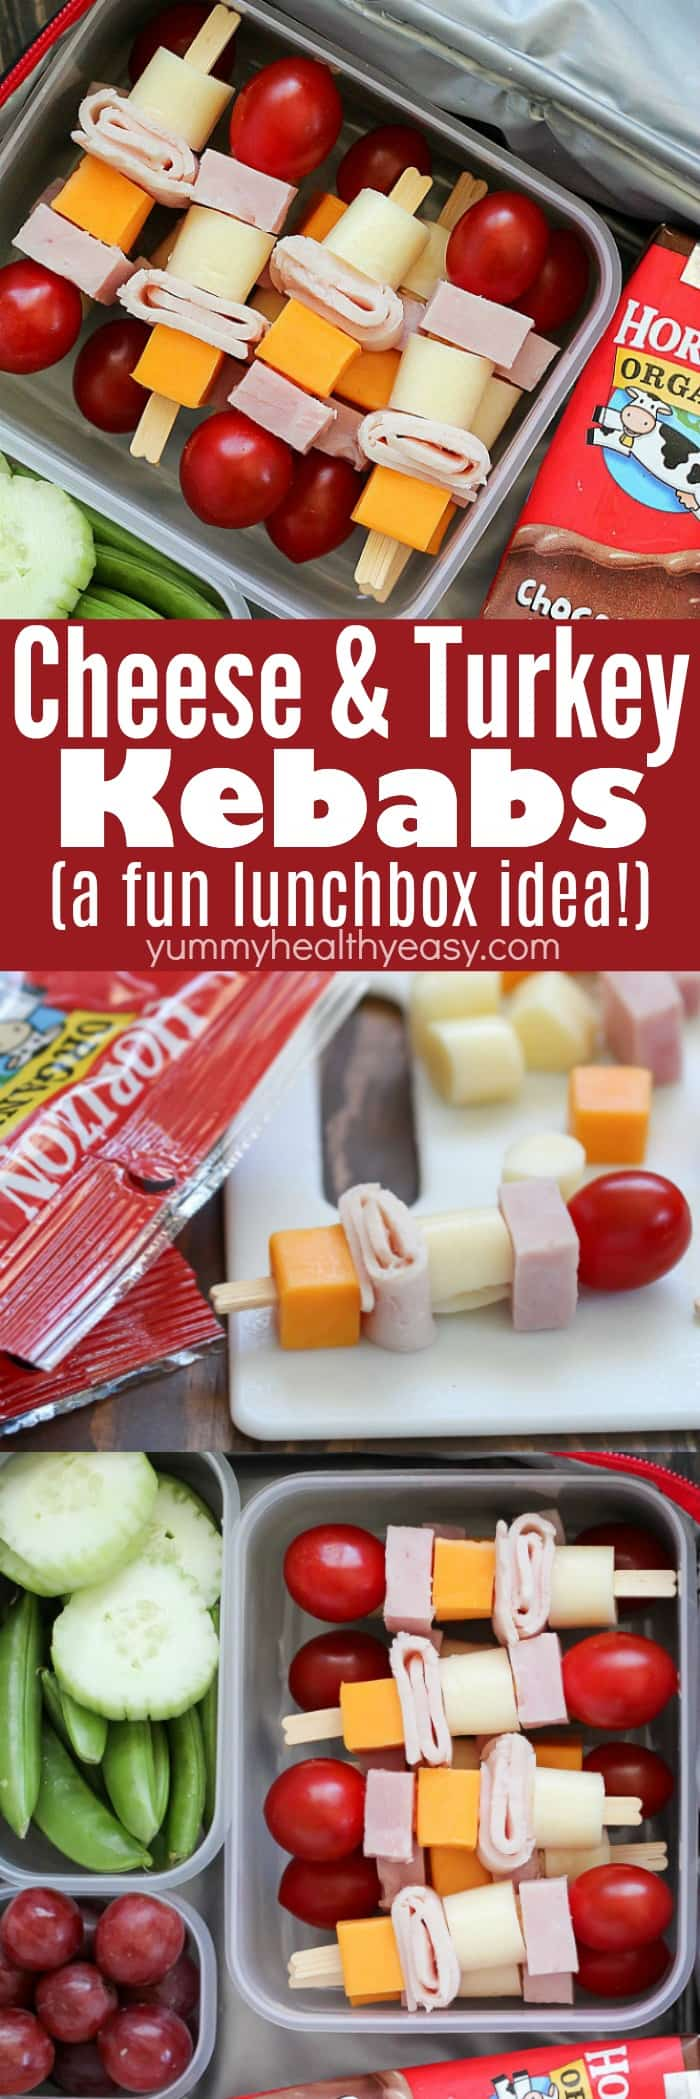 These Cheese & Turkey Kebabs are the cutest lunchbox idea for both kids AND adults! Cubed turkey and cheese are skewered onto toothpicks for a fun change up for lunch! AD via @jennikolaus